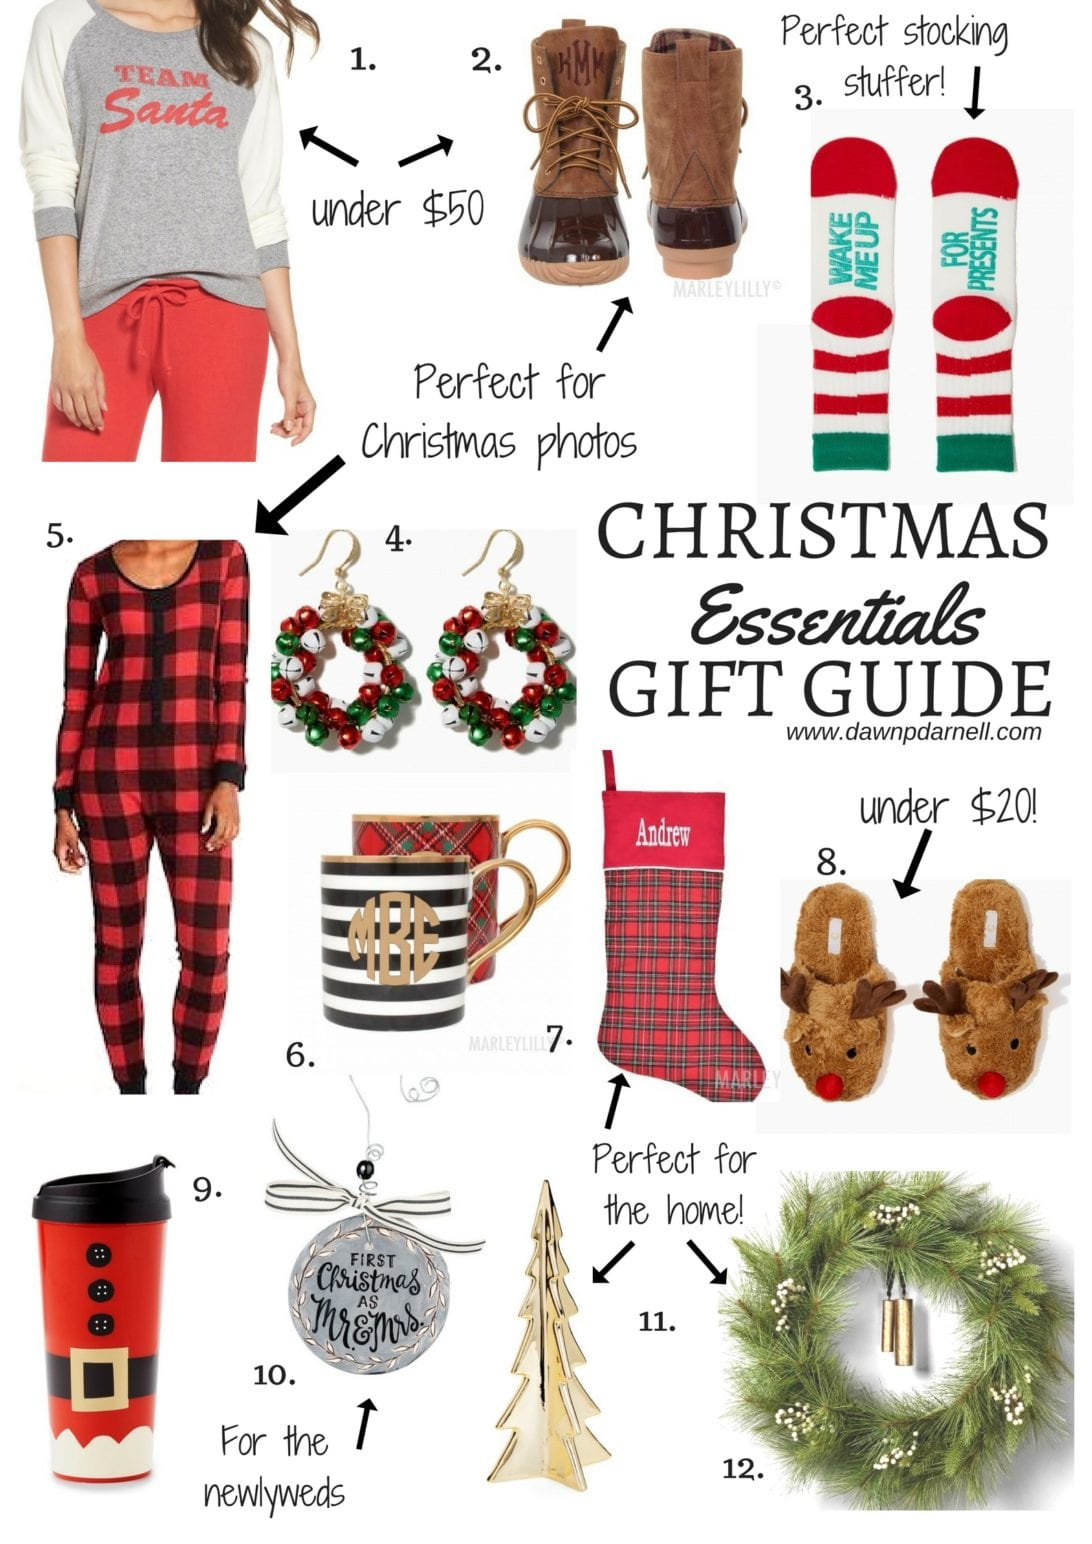 1. Team Santa Raglan Sweatshirt  2. Monogrammed Duck Boots  3. Wake Me Up For Presents Socks  4. Jingle Bell Wreath Earrings  5. Thermal Onesie for Women  6. Personalized Coffee Mug  7. Monogrammed Stocking   8. Reindeer Slip-on Slippers  9. holiday village thermal mug  10. Our First Christmas Ceramic Ornament  11. Gold Porcelain Tree  12. Pine Wreath from Heart & Hand Magnolia, christmas gift guide, christmas decor, family matching pjs, buffalo plaid pjs, buffalo plaid dress, buffalo plaid pj for toddlers, buffalo plaid dress, christmas outfit ,